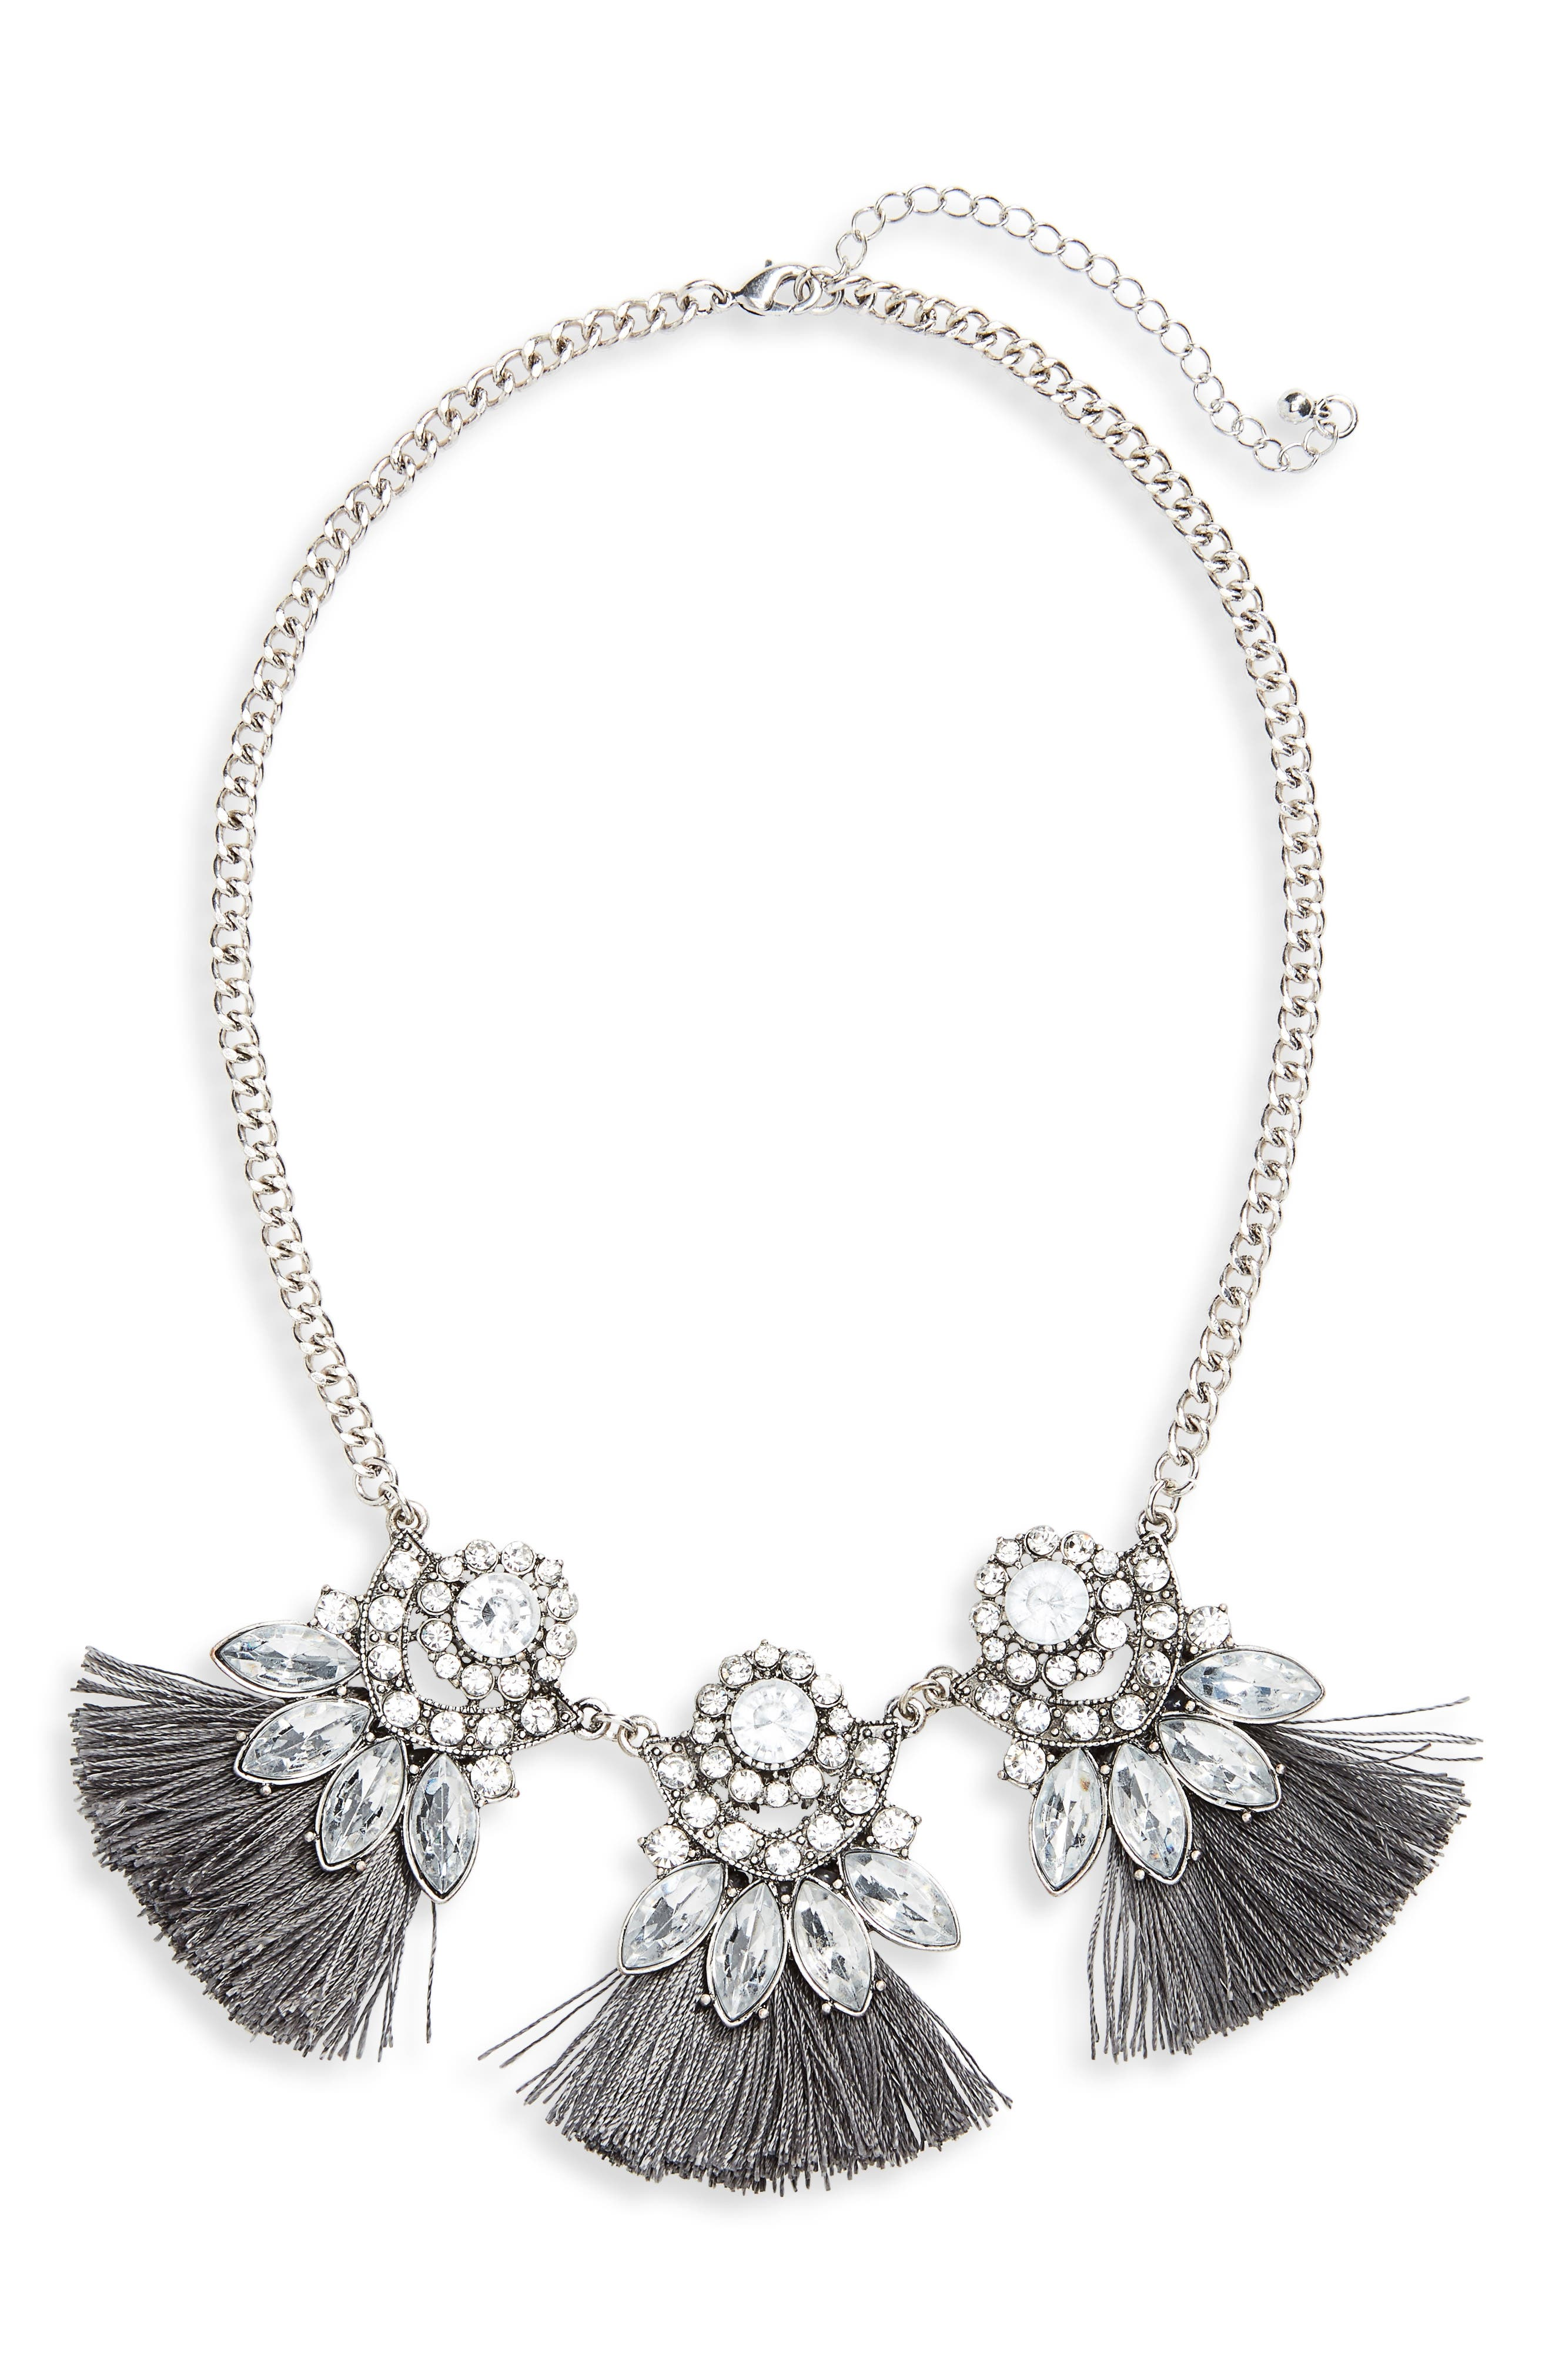 Crystal Tassel Statement Necklace,                         Main,                         color, Silver/ Gray/ Crystal